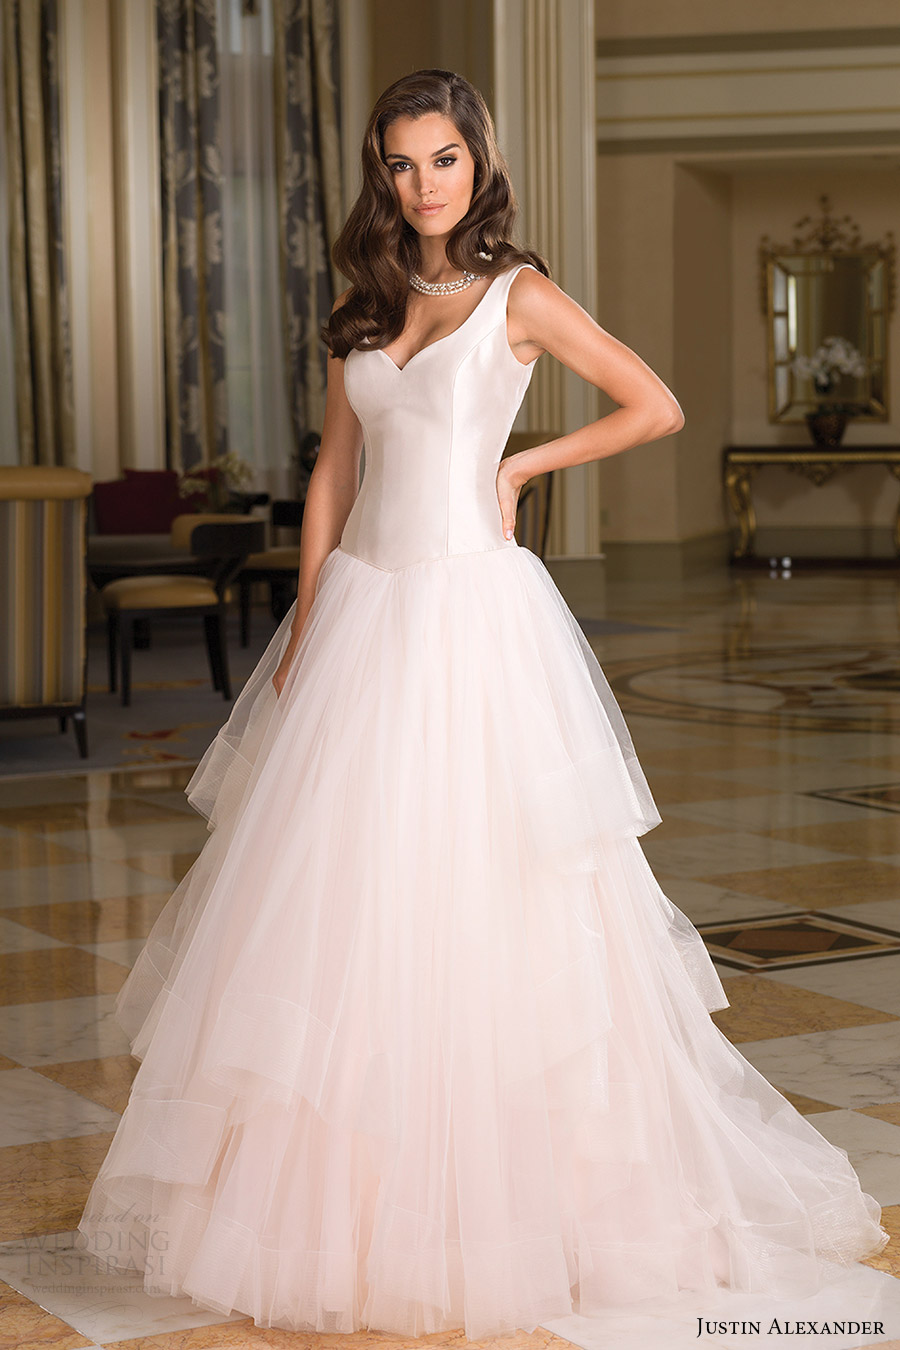 justin alexander bridal fall 2016 sleeveless straps vneck basque waist tulle ball gown wedding dress (8850) mv romantic